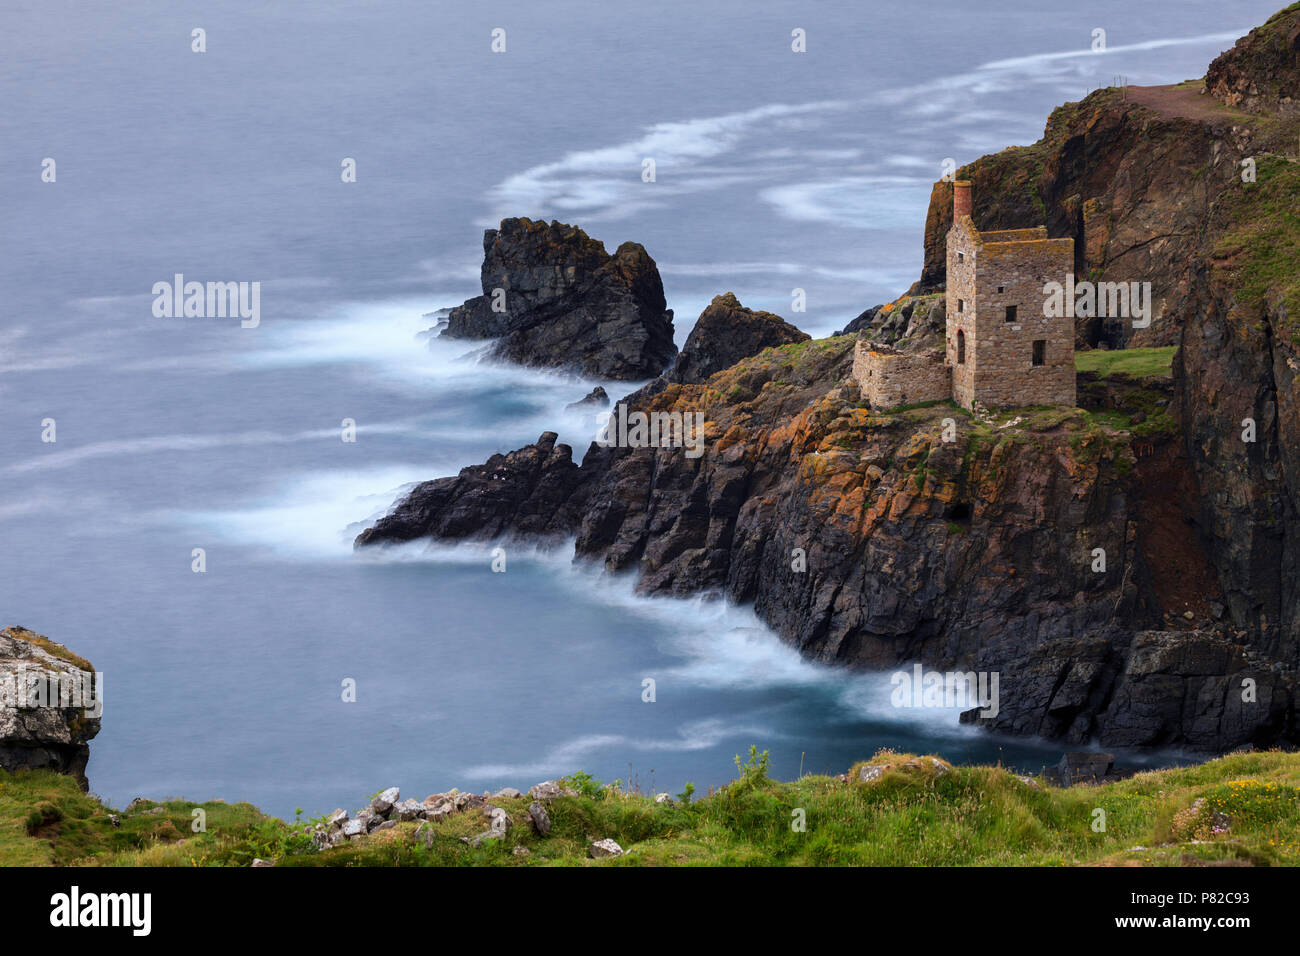 The Crown Mines at Botallack in Cornwall. - Stock Image